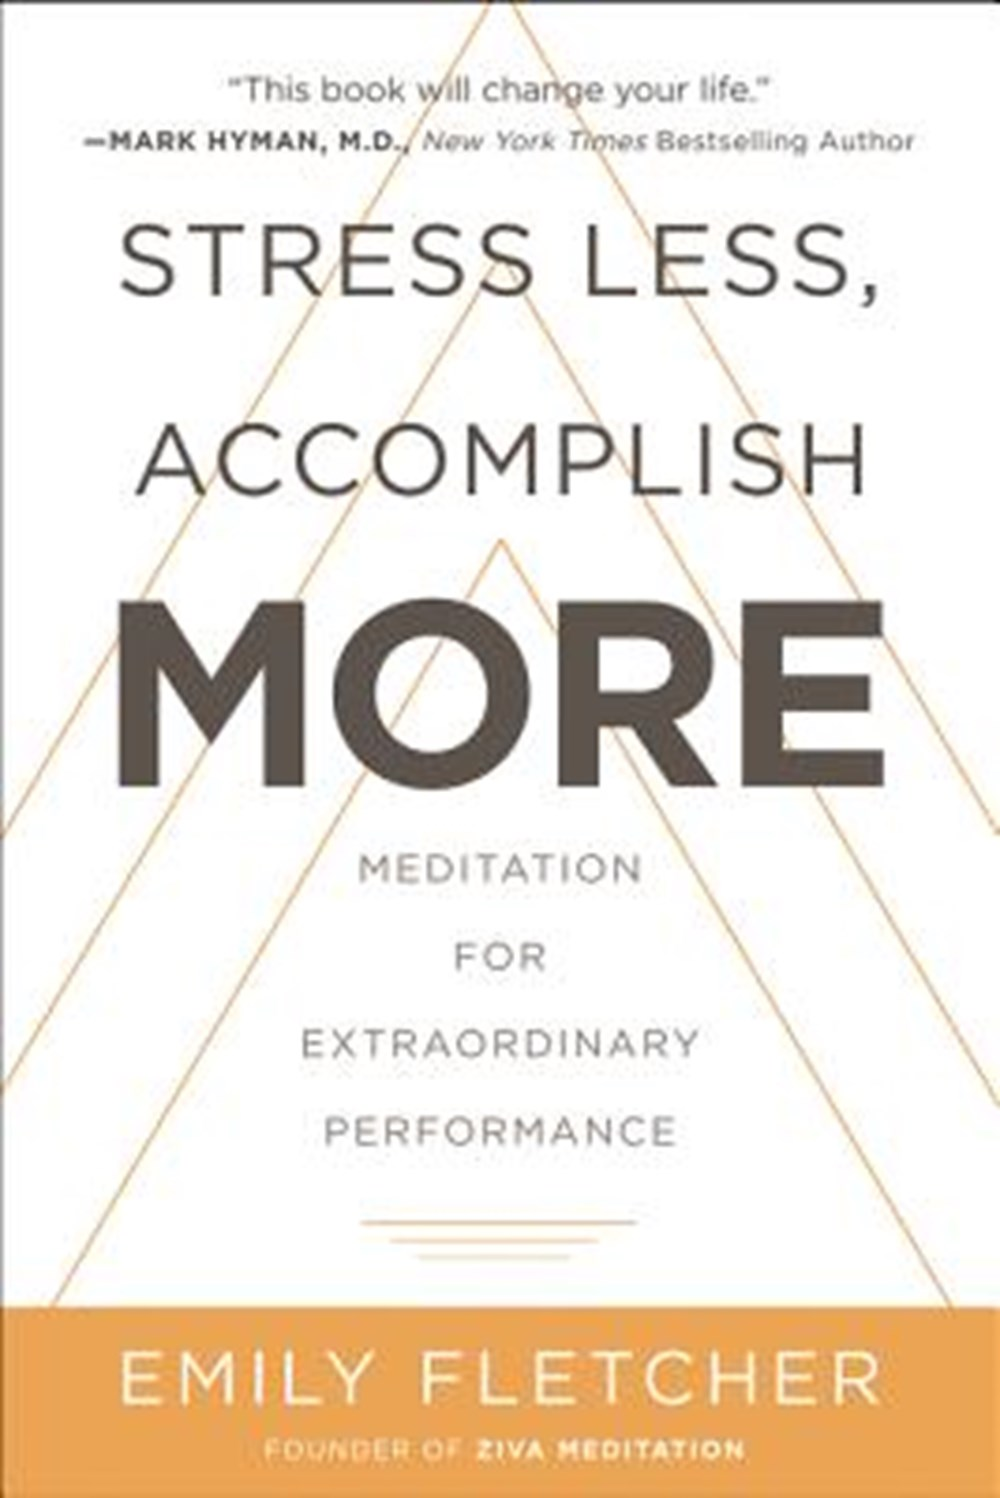 Stress Less, Accomplish More Meditation for Extraordinary Performance